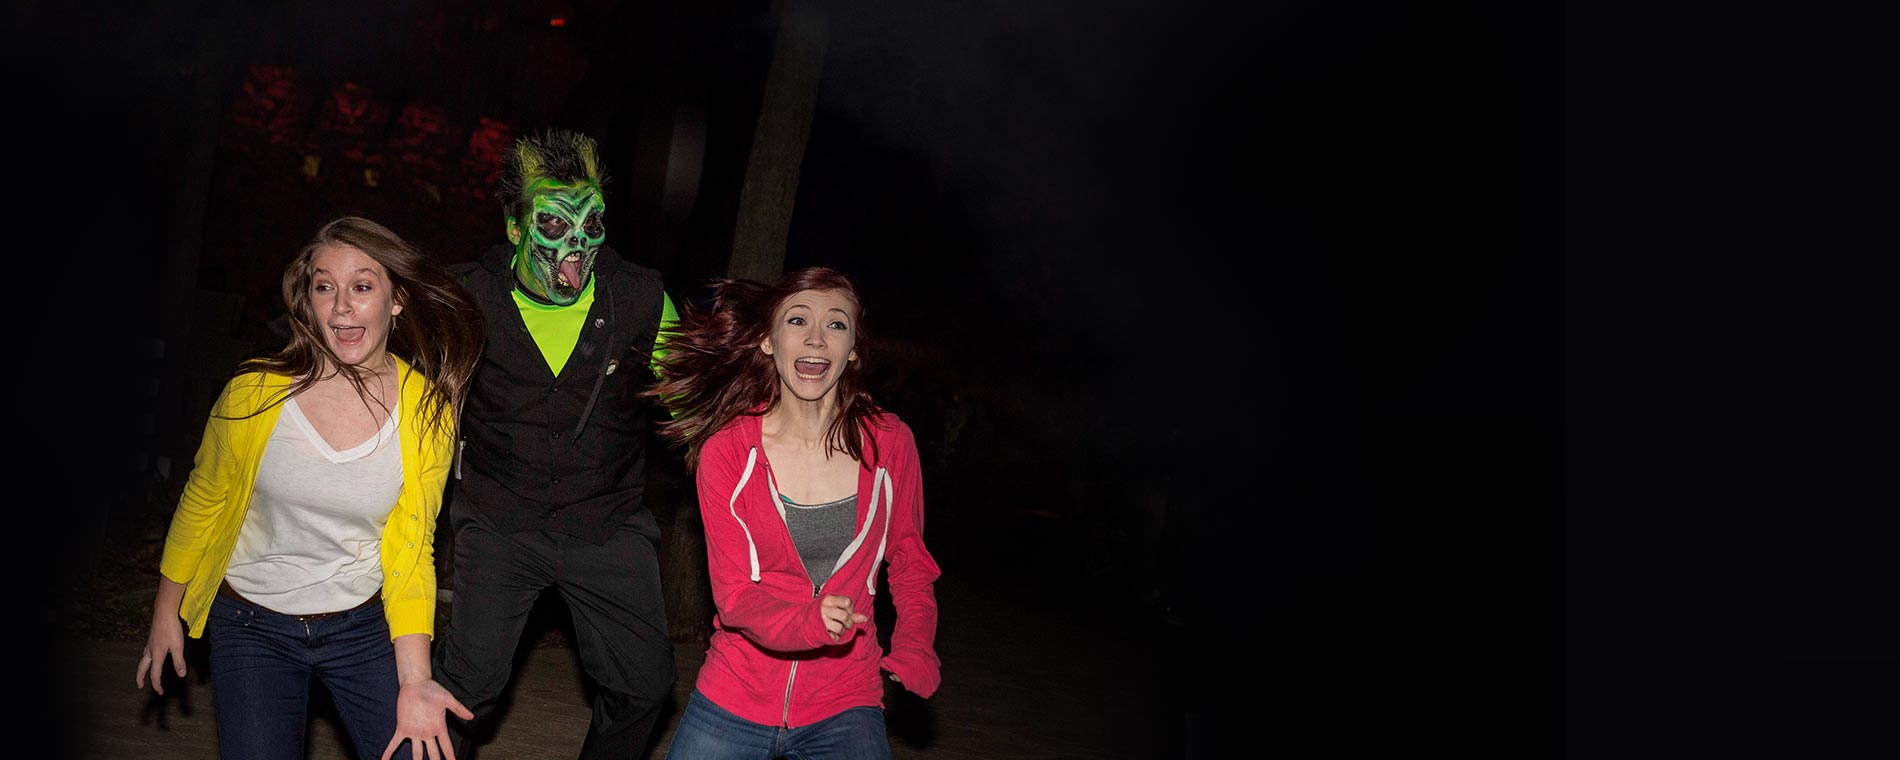 Student ID Friday Nights at Cedar Point's Halloween Event